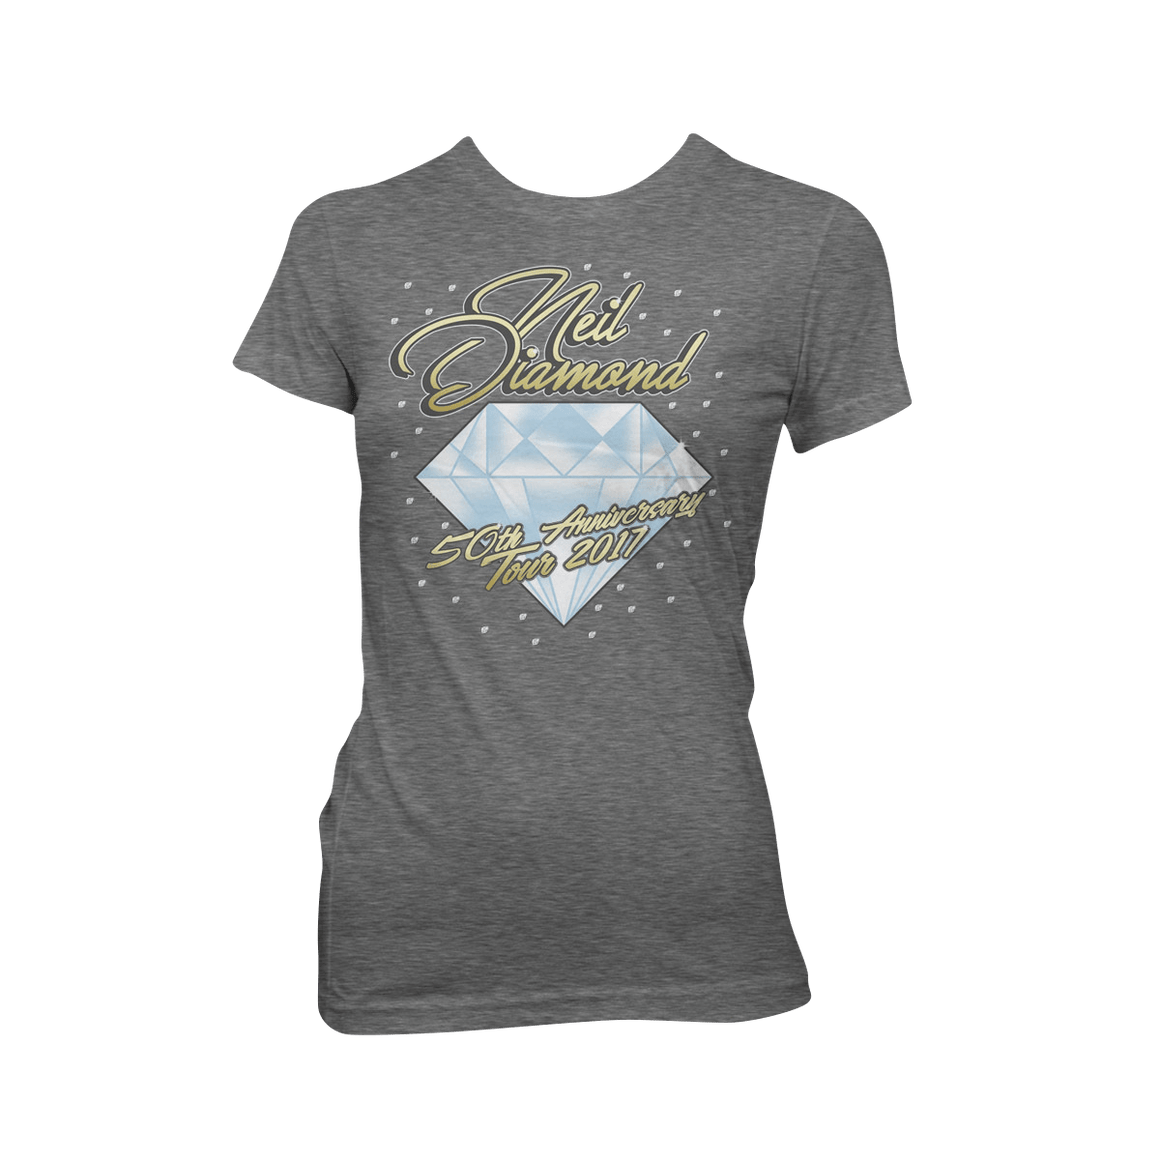 50th Anniversary Tour Women's T-shirt - Neil Diamond